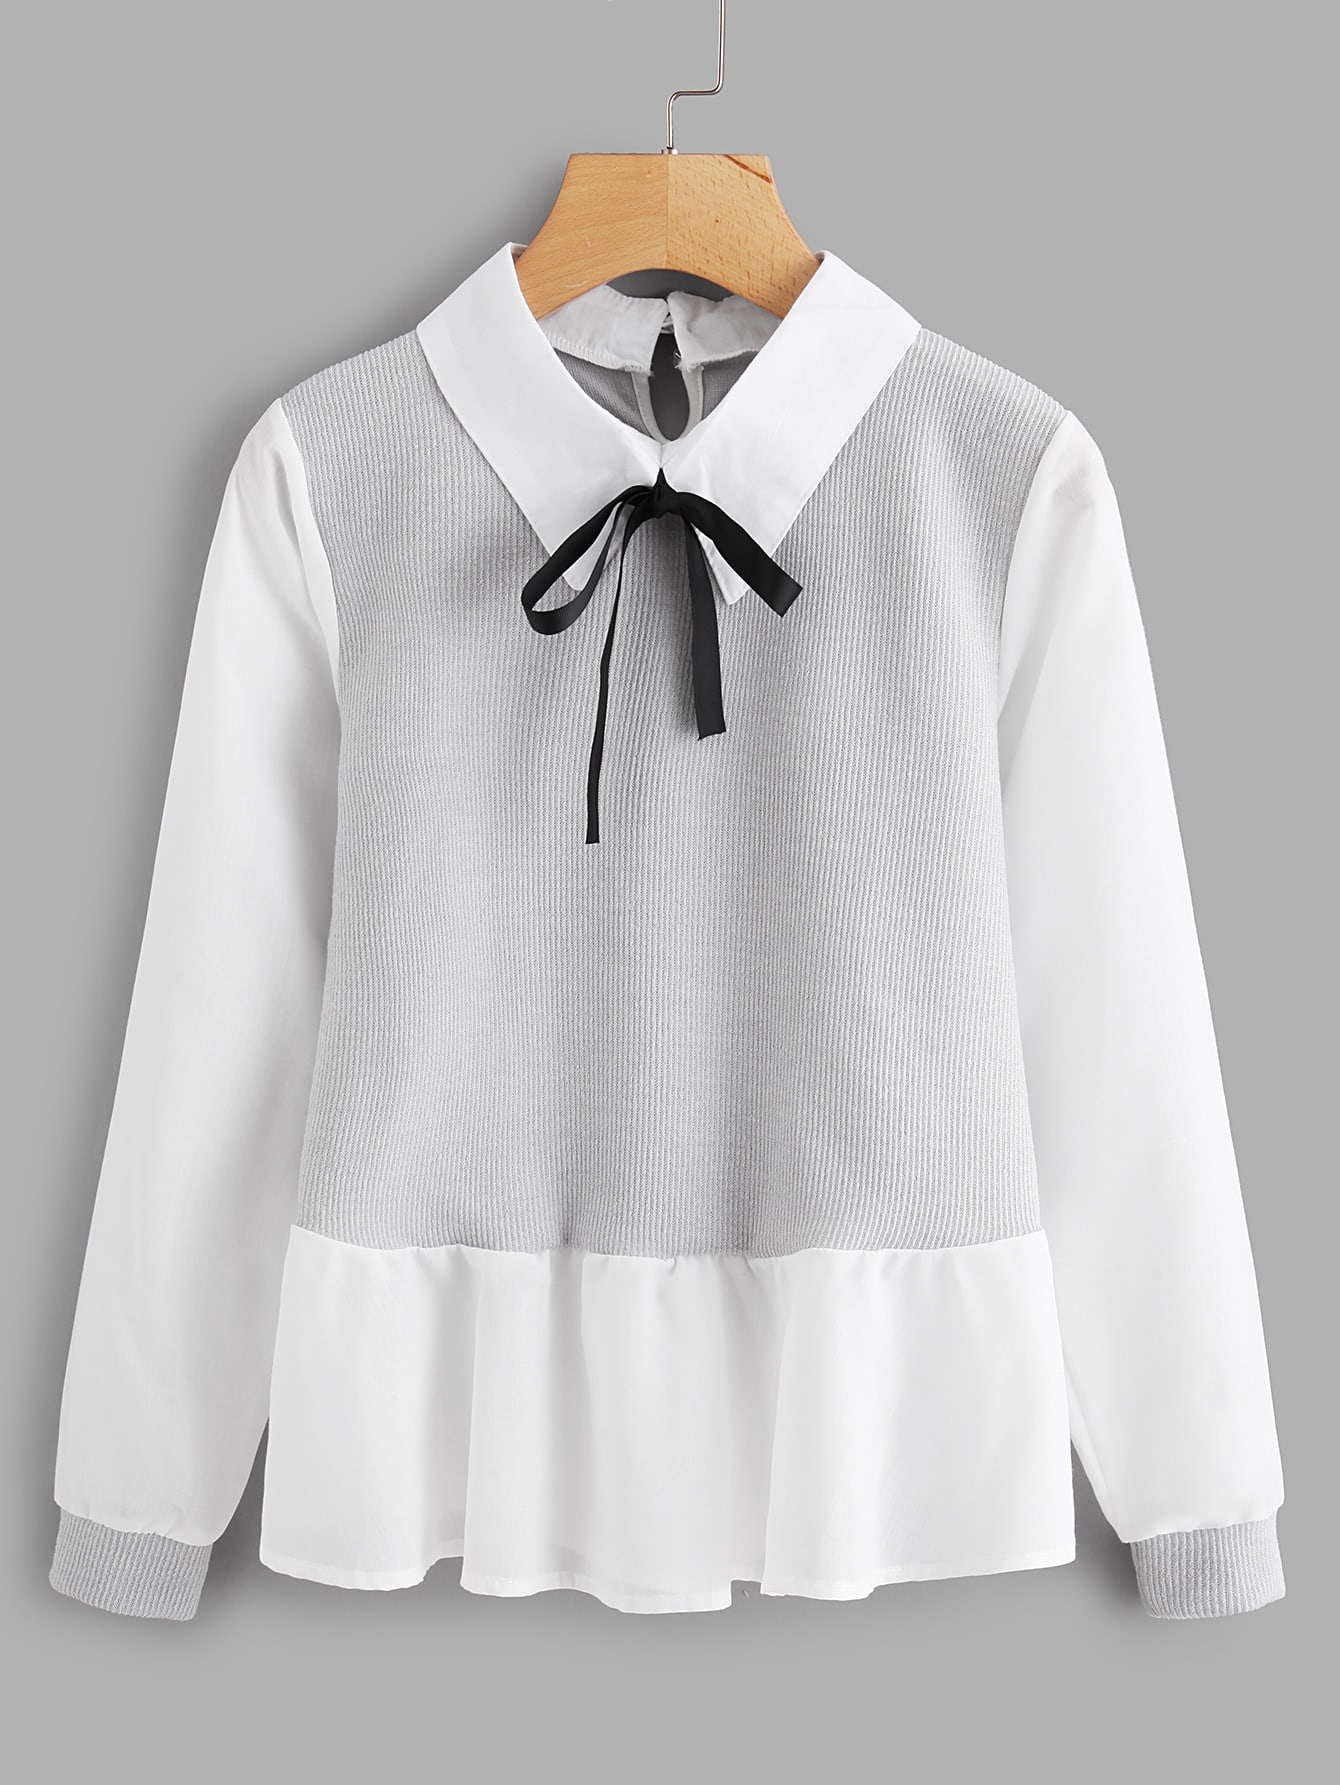 Ruffle Contrast Bow Tie Neck Blouse contrast embroidered mesh yoke bow tie striped blouse